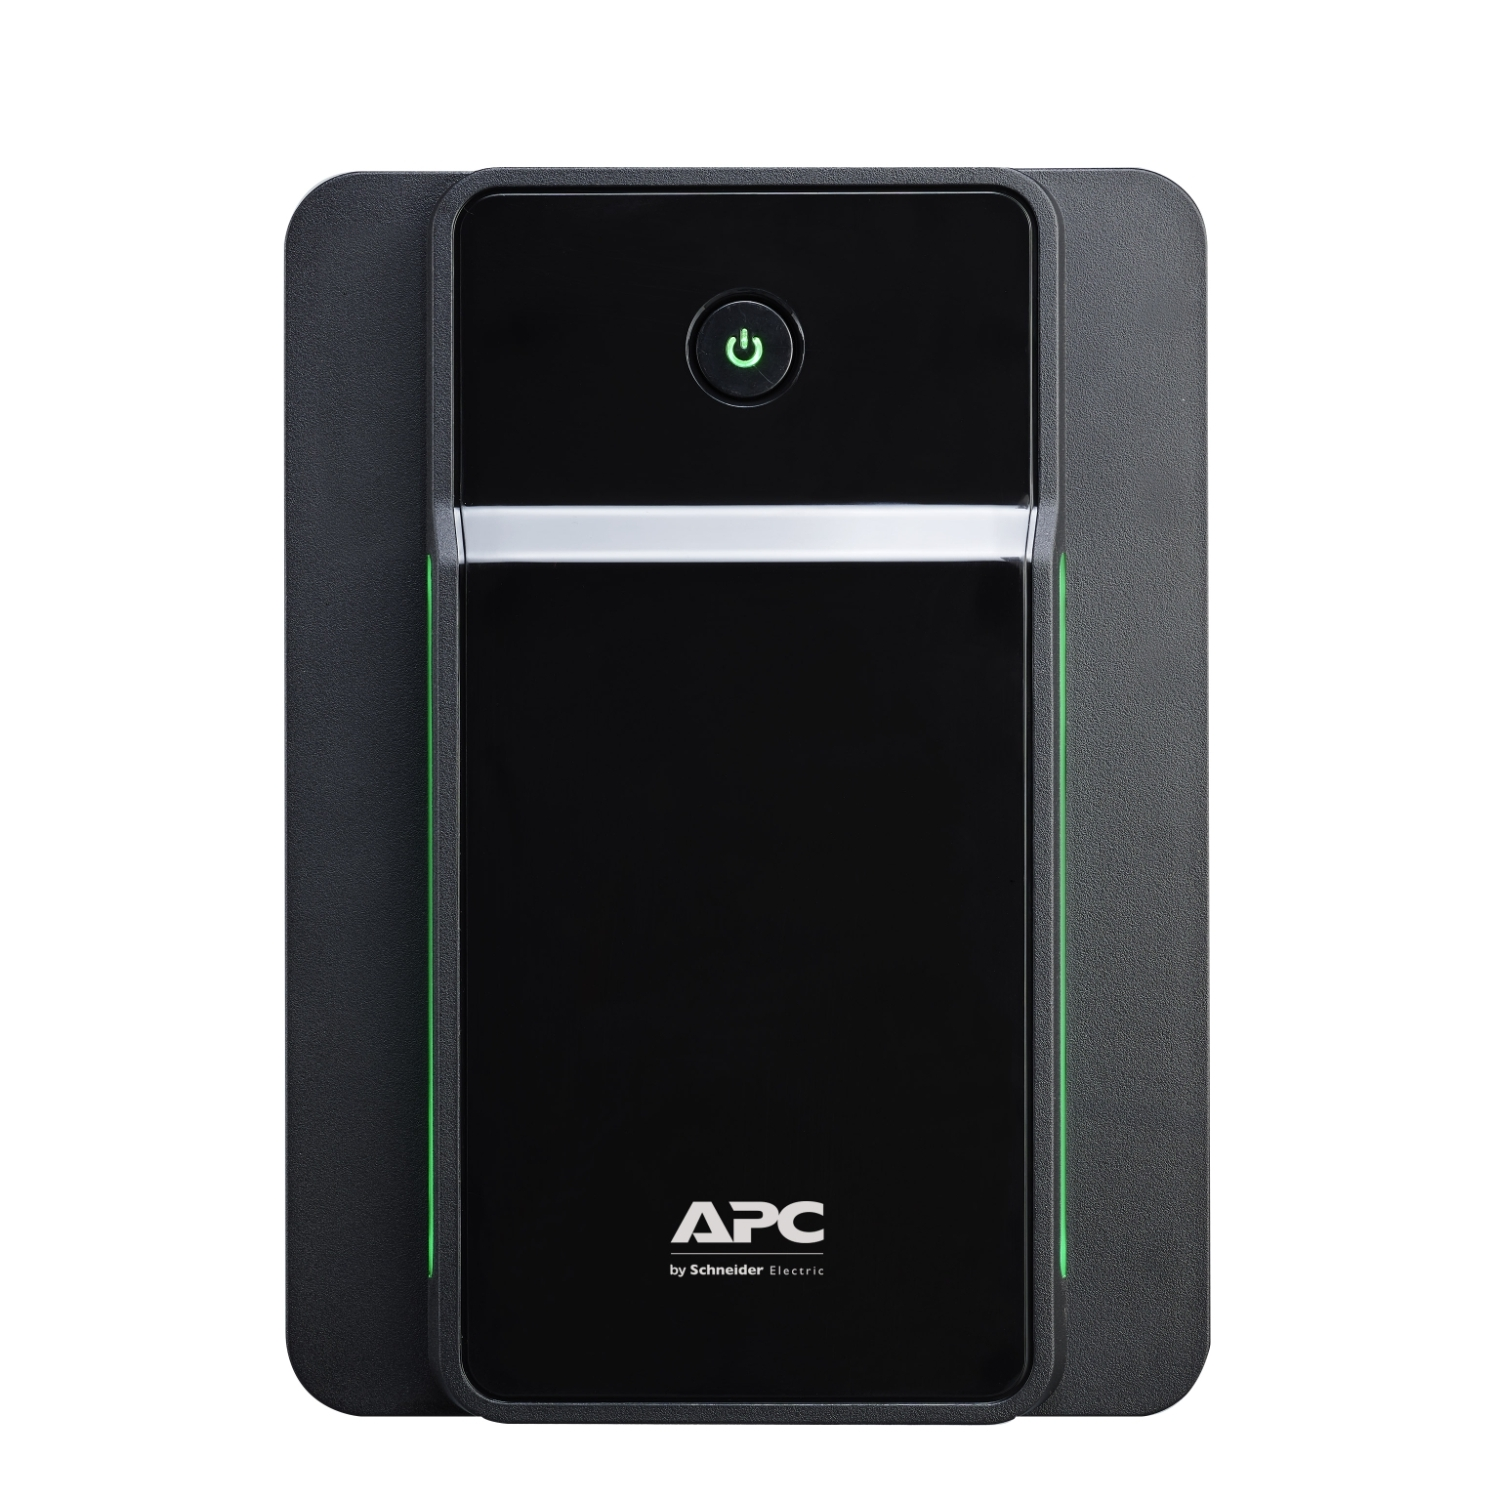 APC Back-UPS 1200VA 650W 4 Outlet Line Interactive Tower UPS